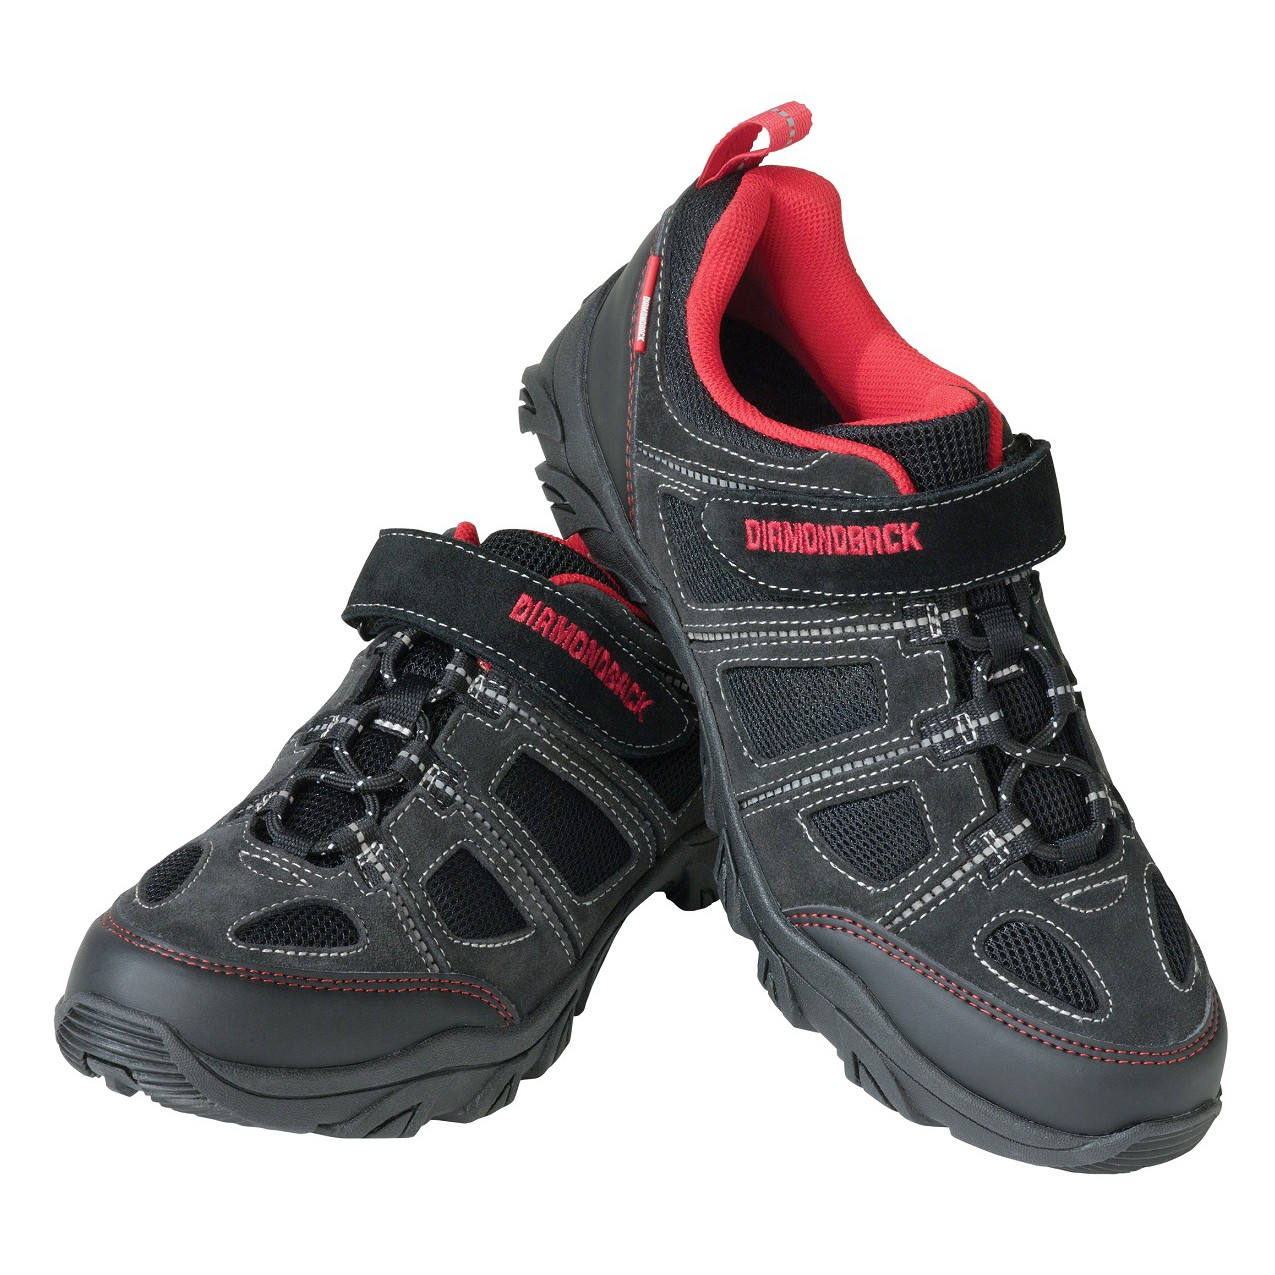 Trace dual sport cycling shoes